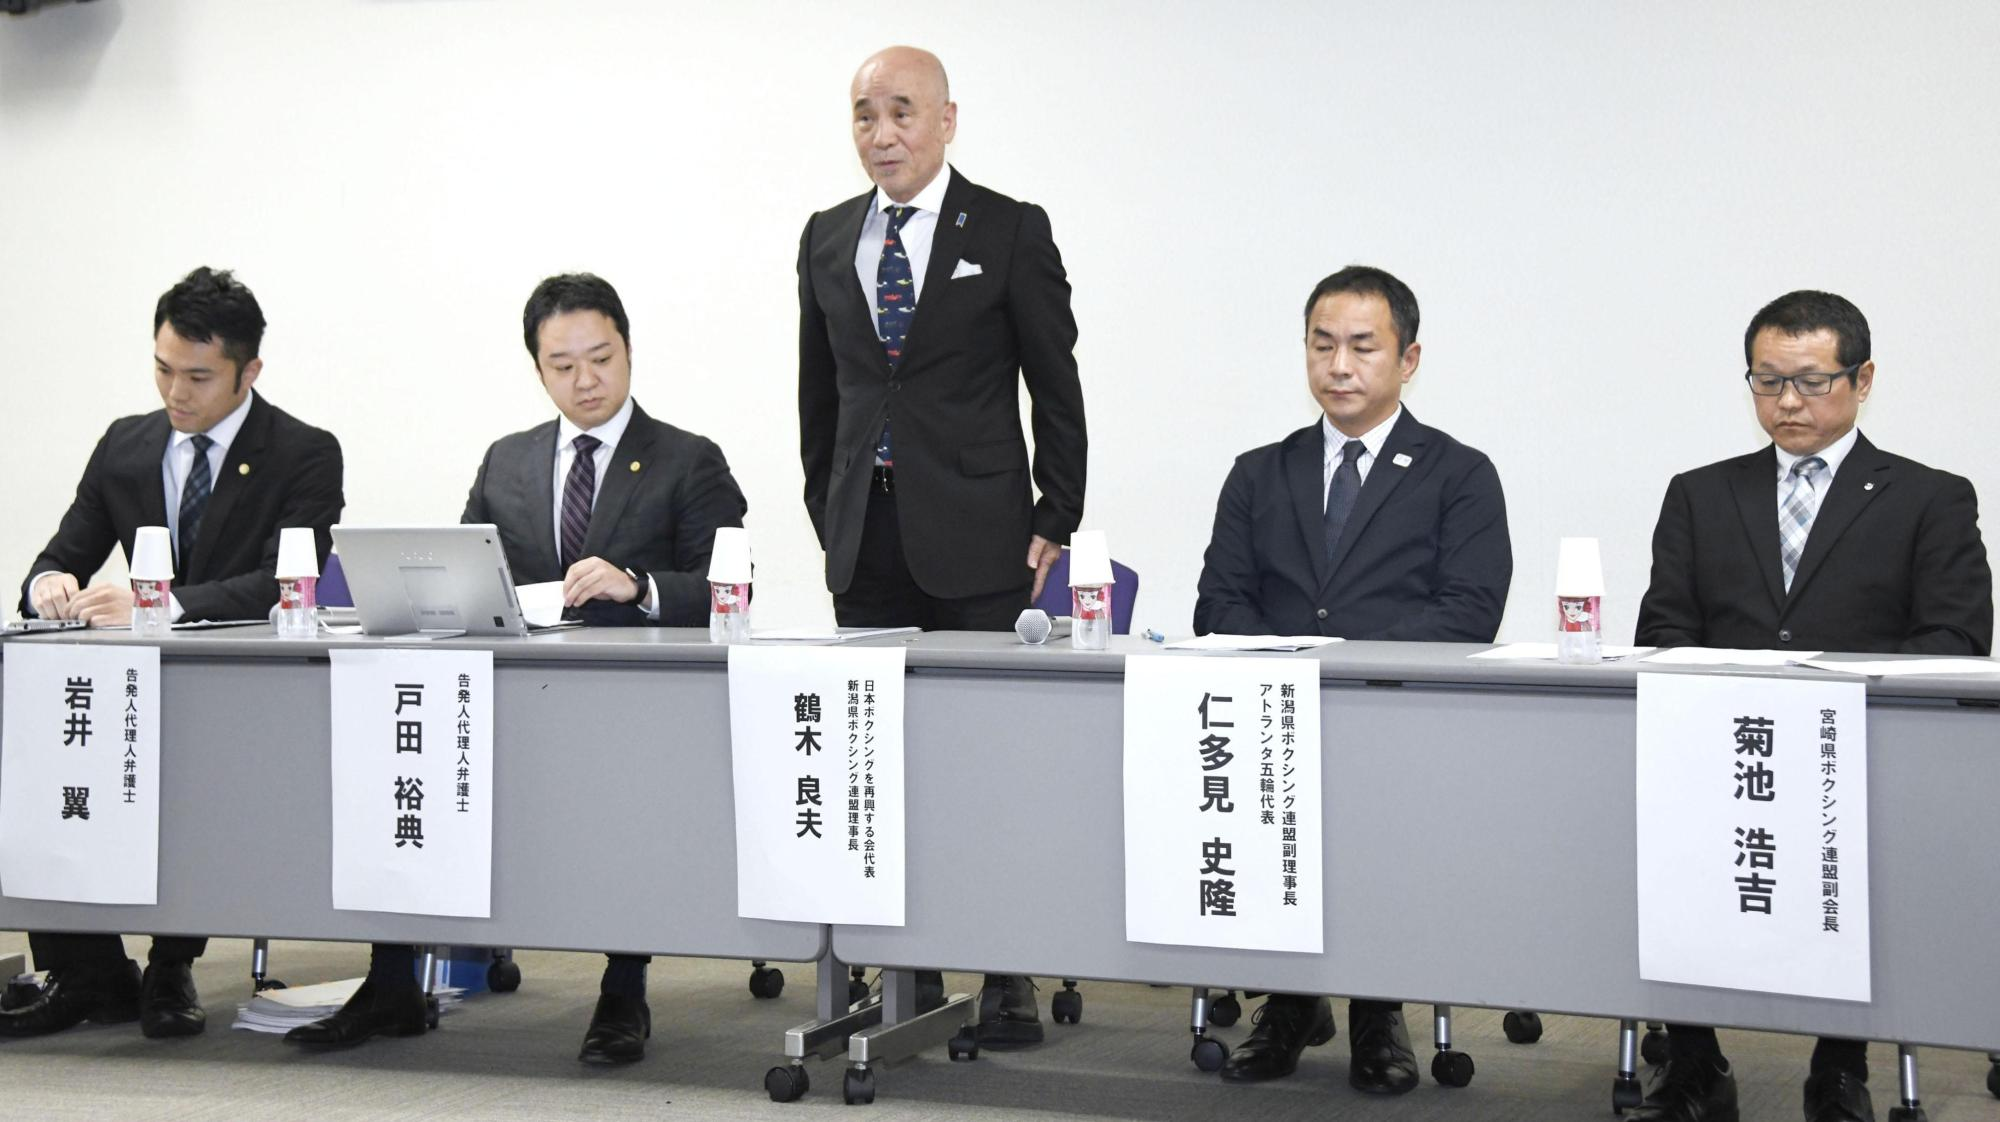 Former JABF board member Yoshio Tsuruki (standing) speaks during a news conference on Wednesday in Tokyo. Tsuruki is leading a group seeking a complete overhaul of amateur boxing's governing body in Japan.   KYODO